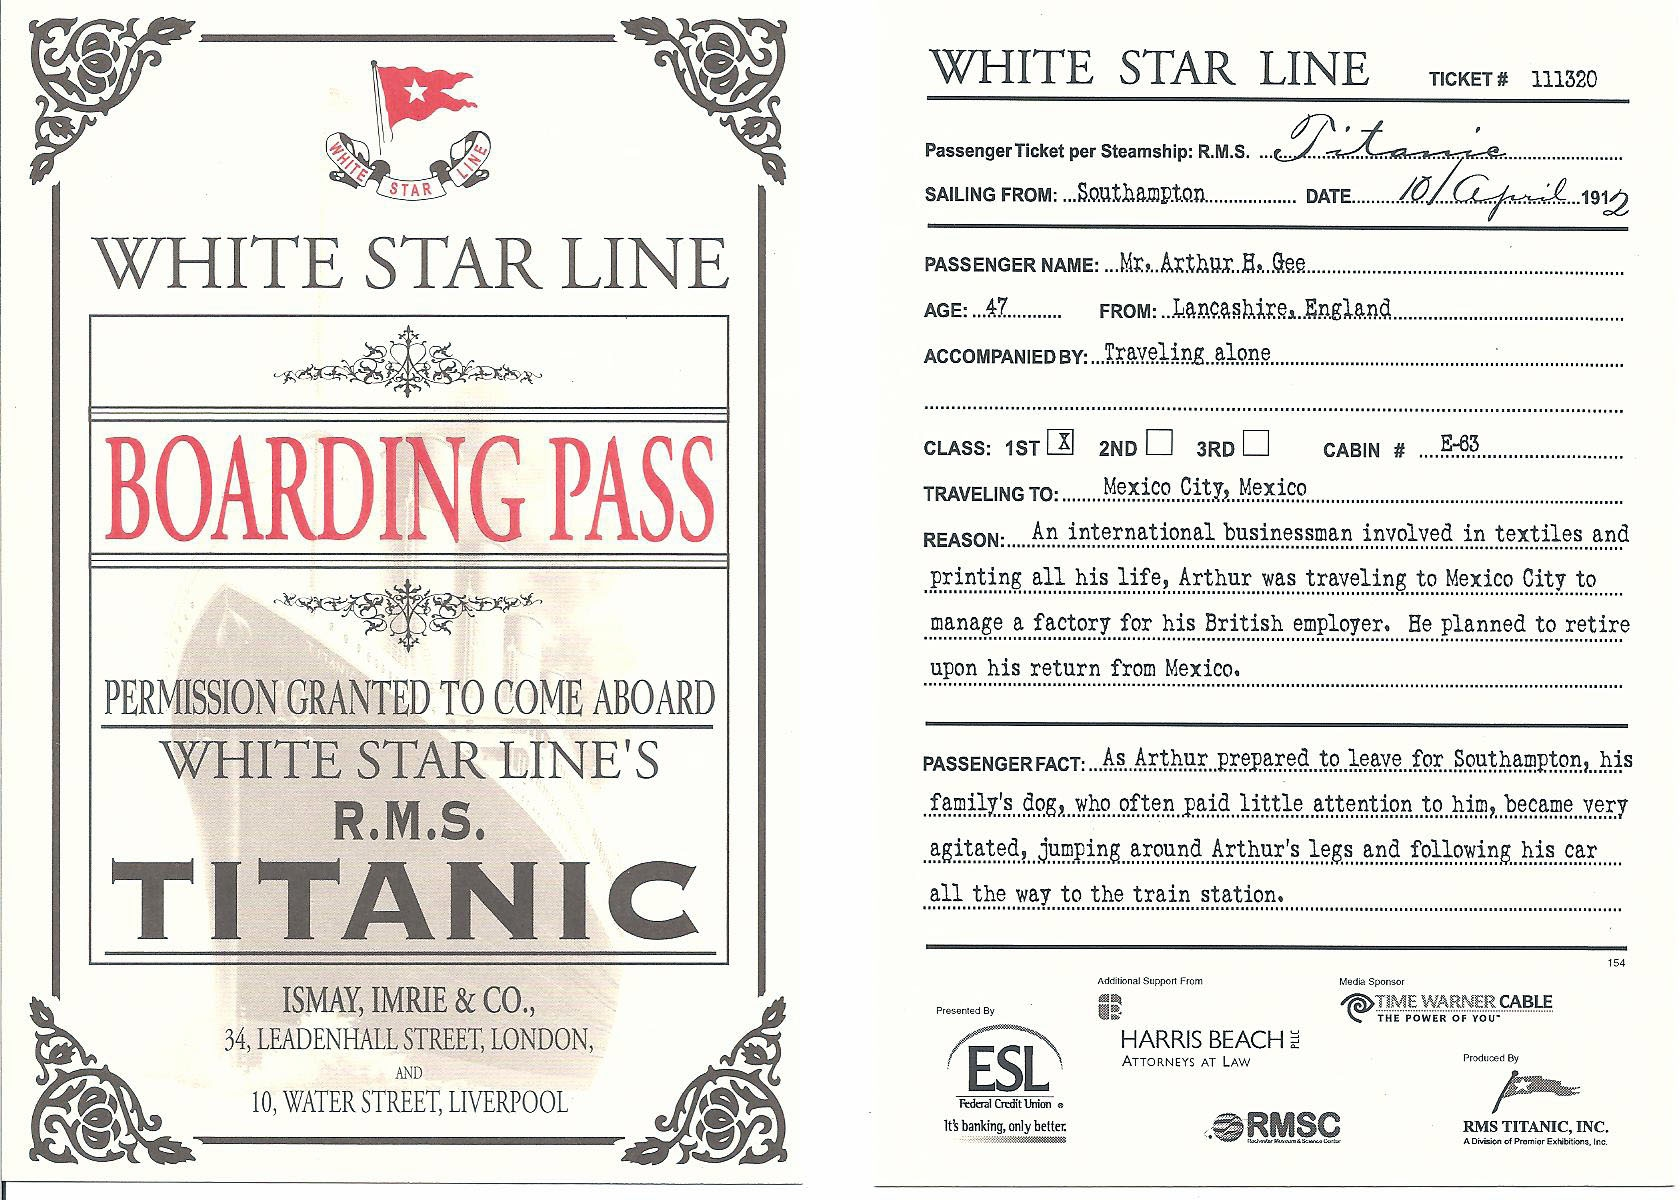 Invitation: 40th Birthday Party with Titanic Theme | Kangaroo Digital